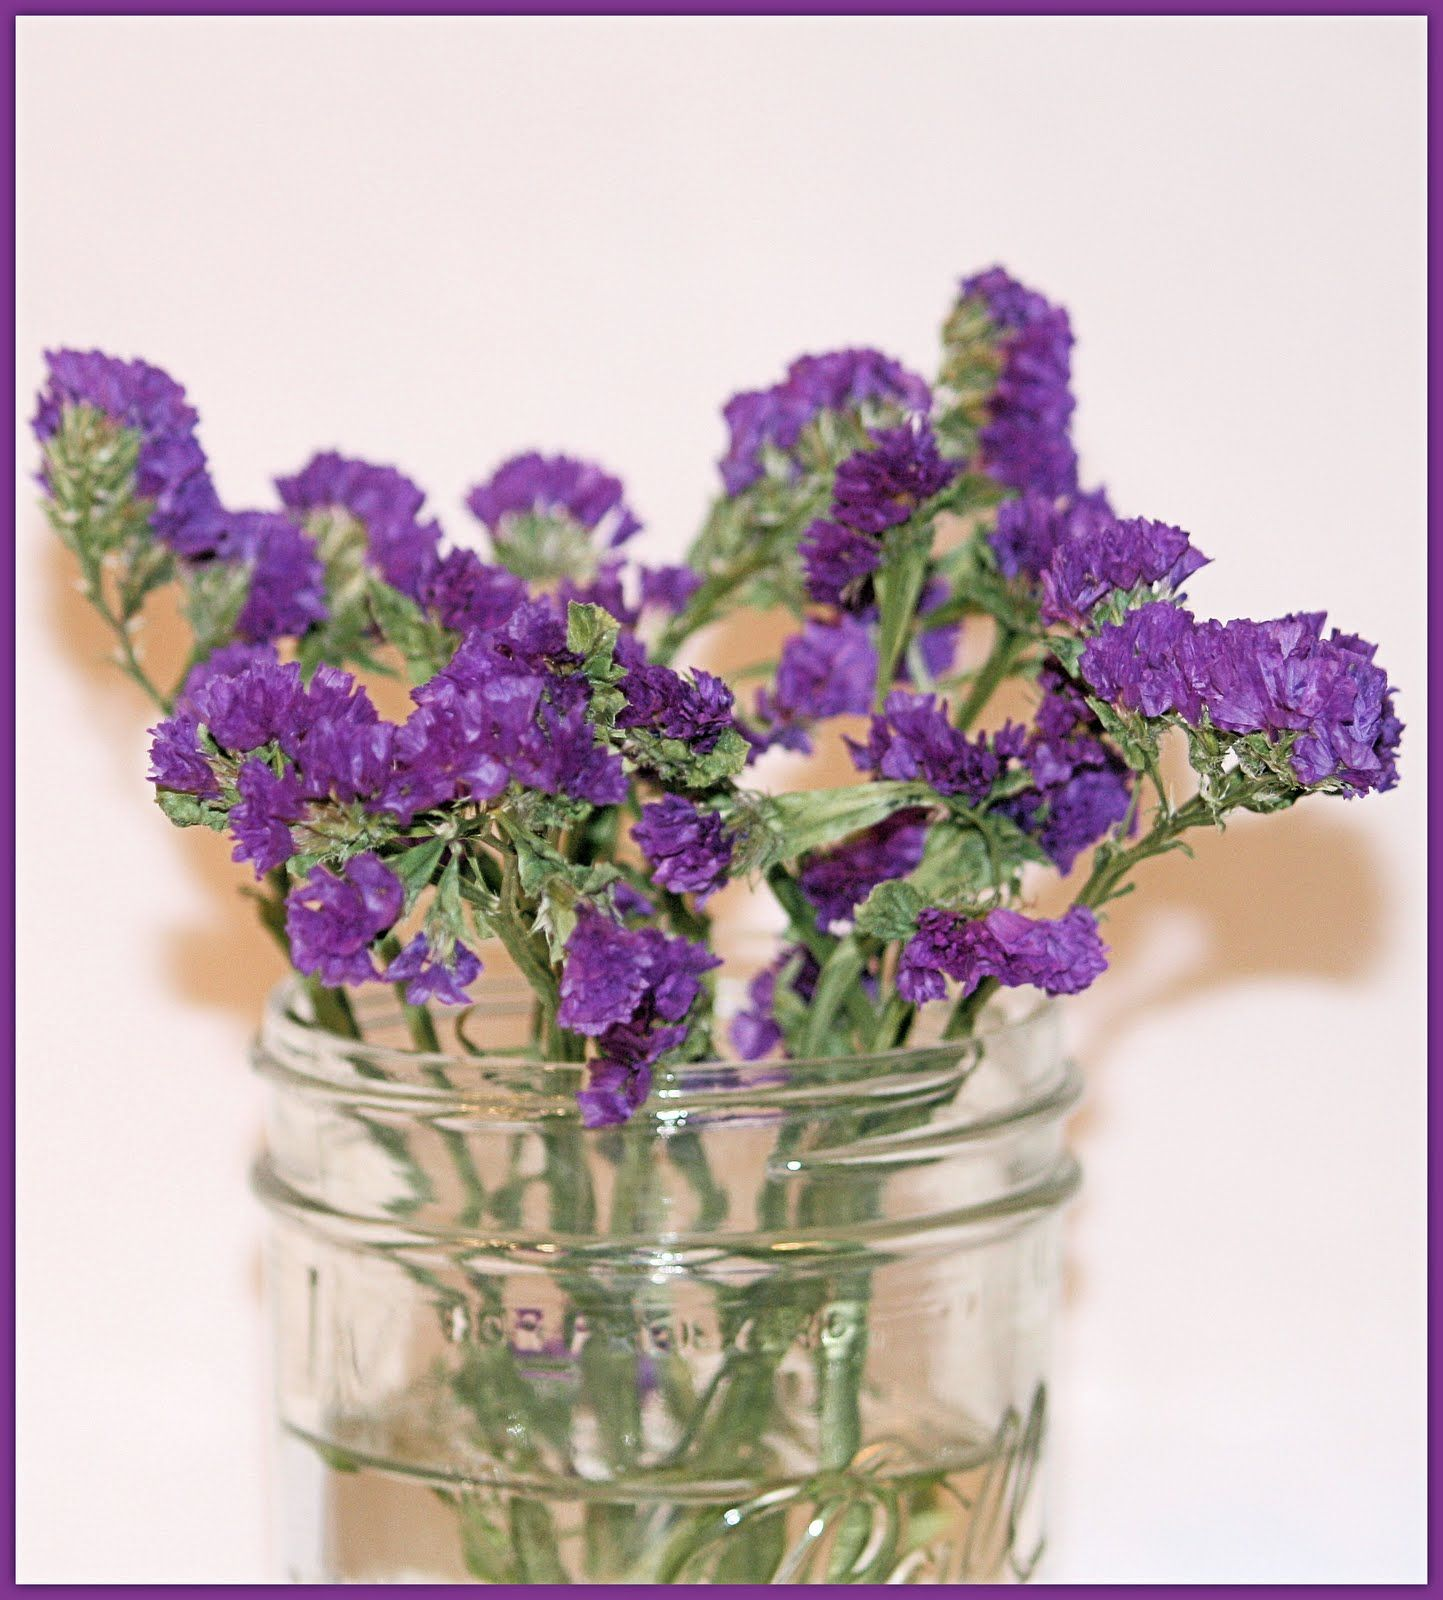 purple statice filler flower instead of lavender due to